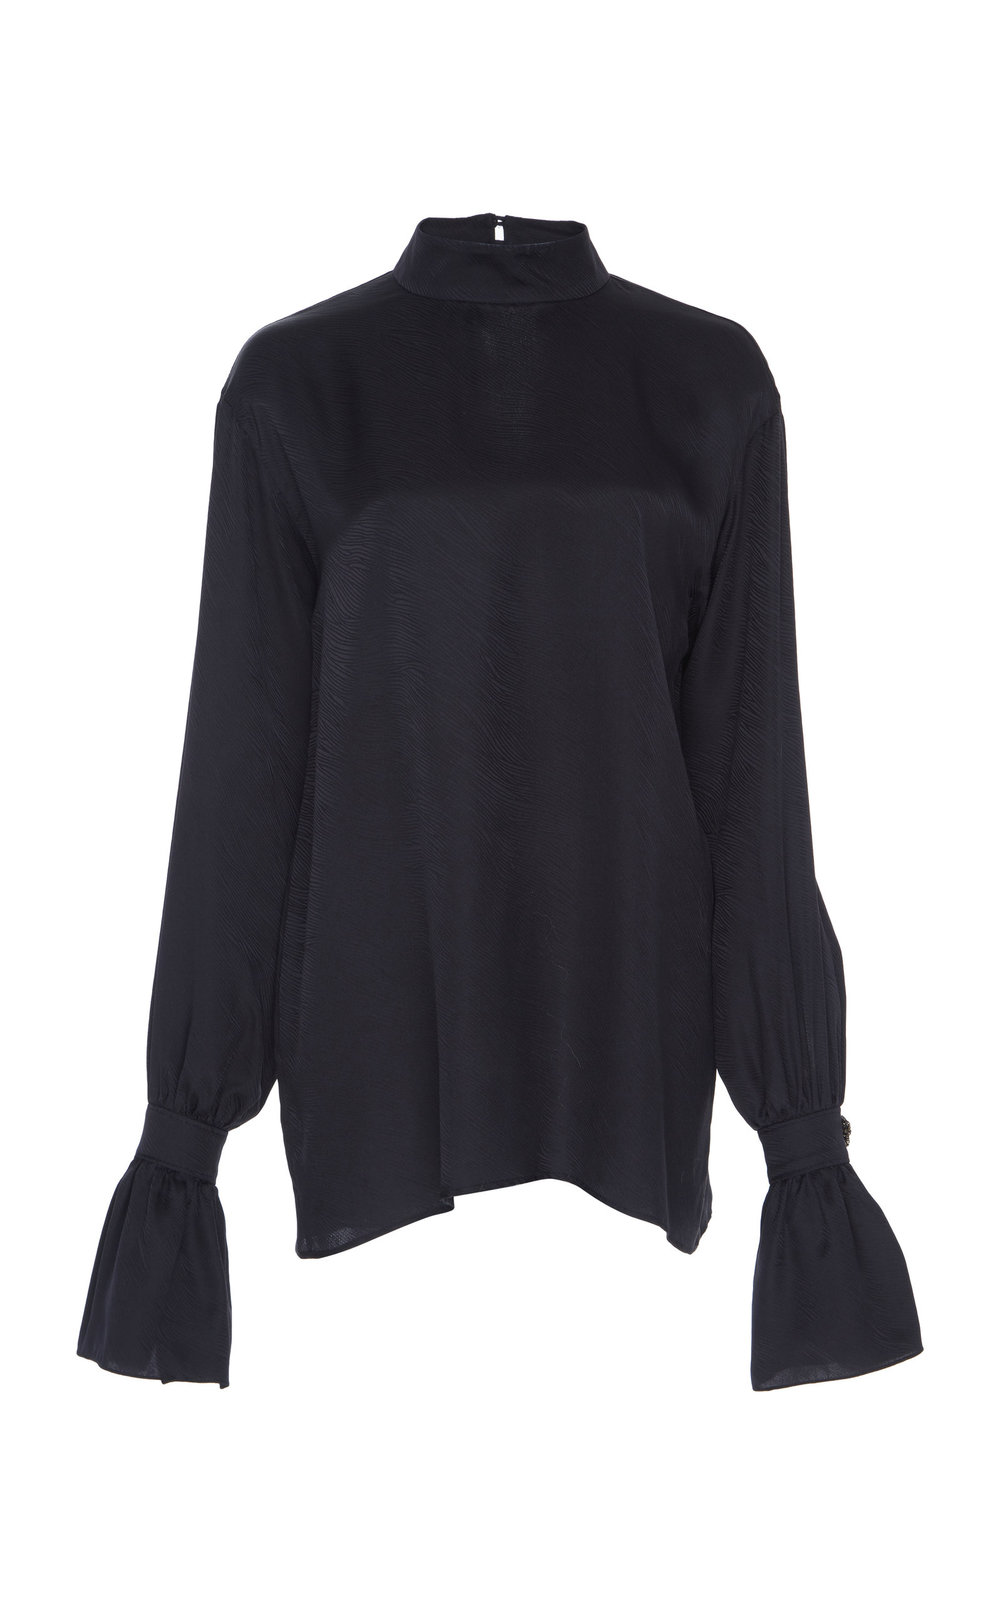 Lantana Silk Jacquard Blouse - BLACK  A perfect Silk top with a relaxed fit and turtle neckline. The minimalistic shape is easy to dress and suits every occasion.